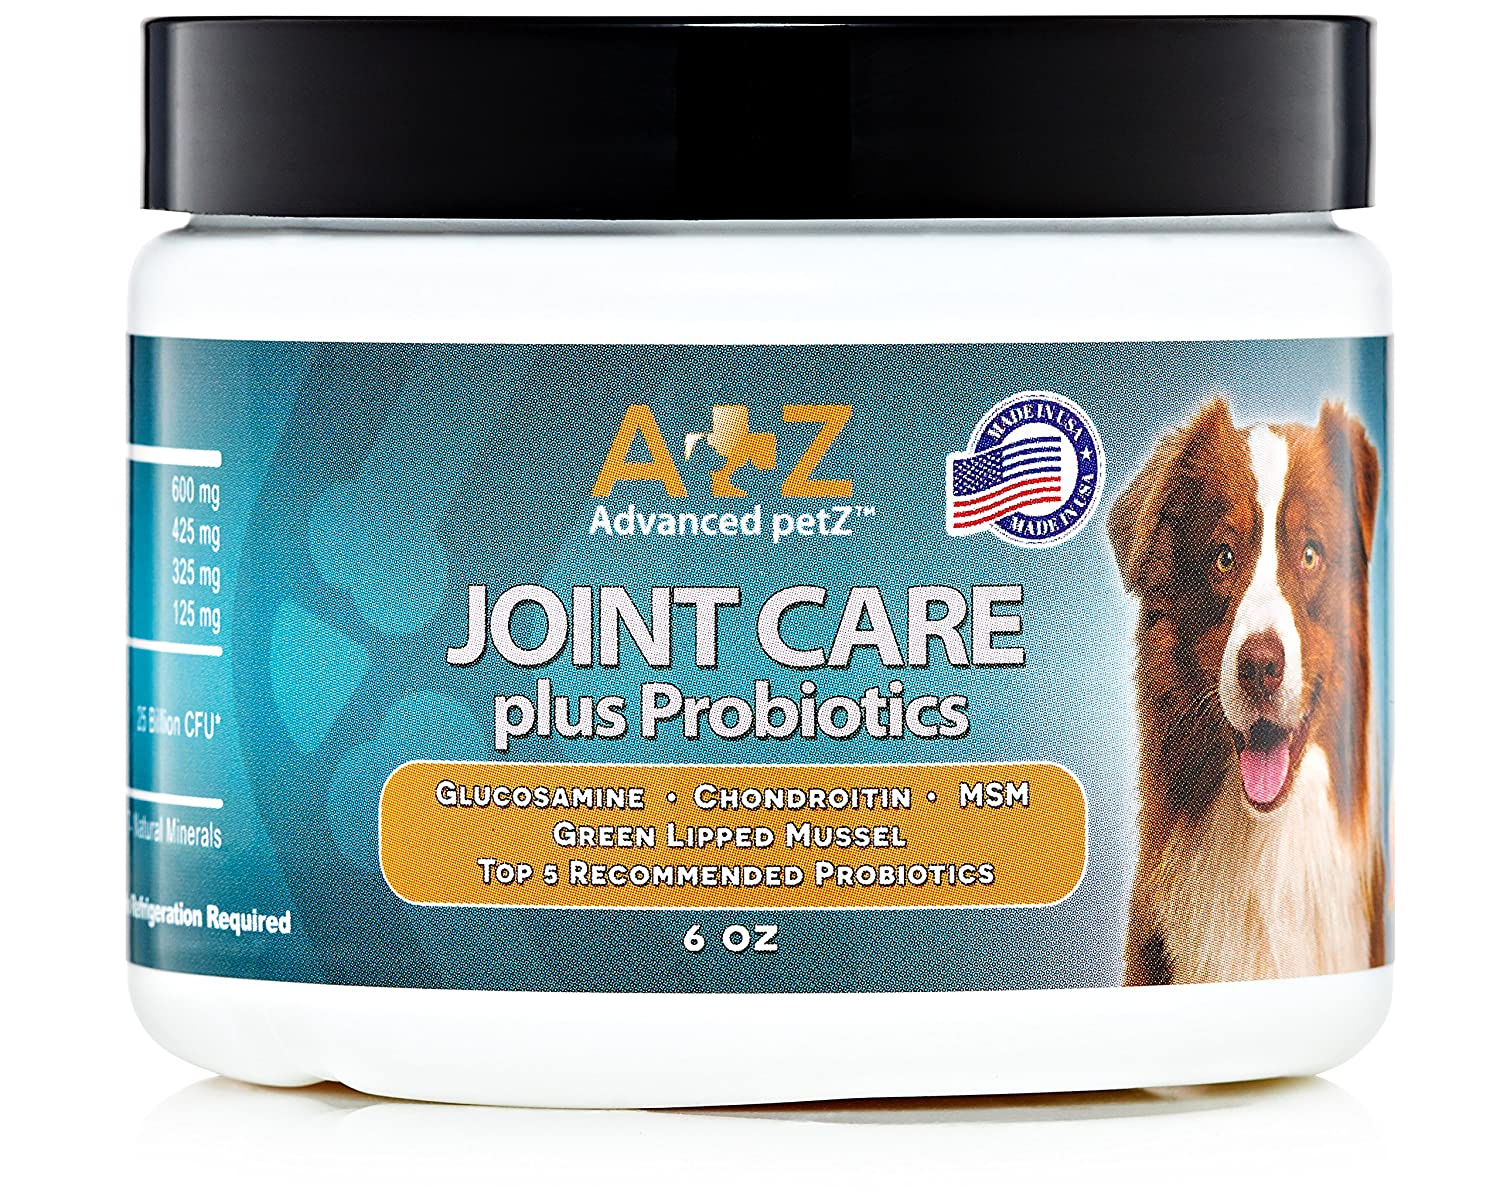 Joint Care plus Probiotics Supplement for Dogs by Advanced petZ. Glucosamine Chondroitin MSM. 6oz